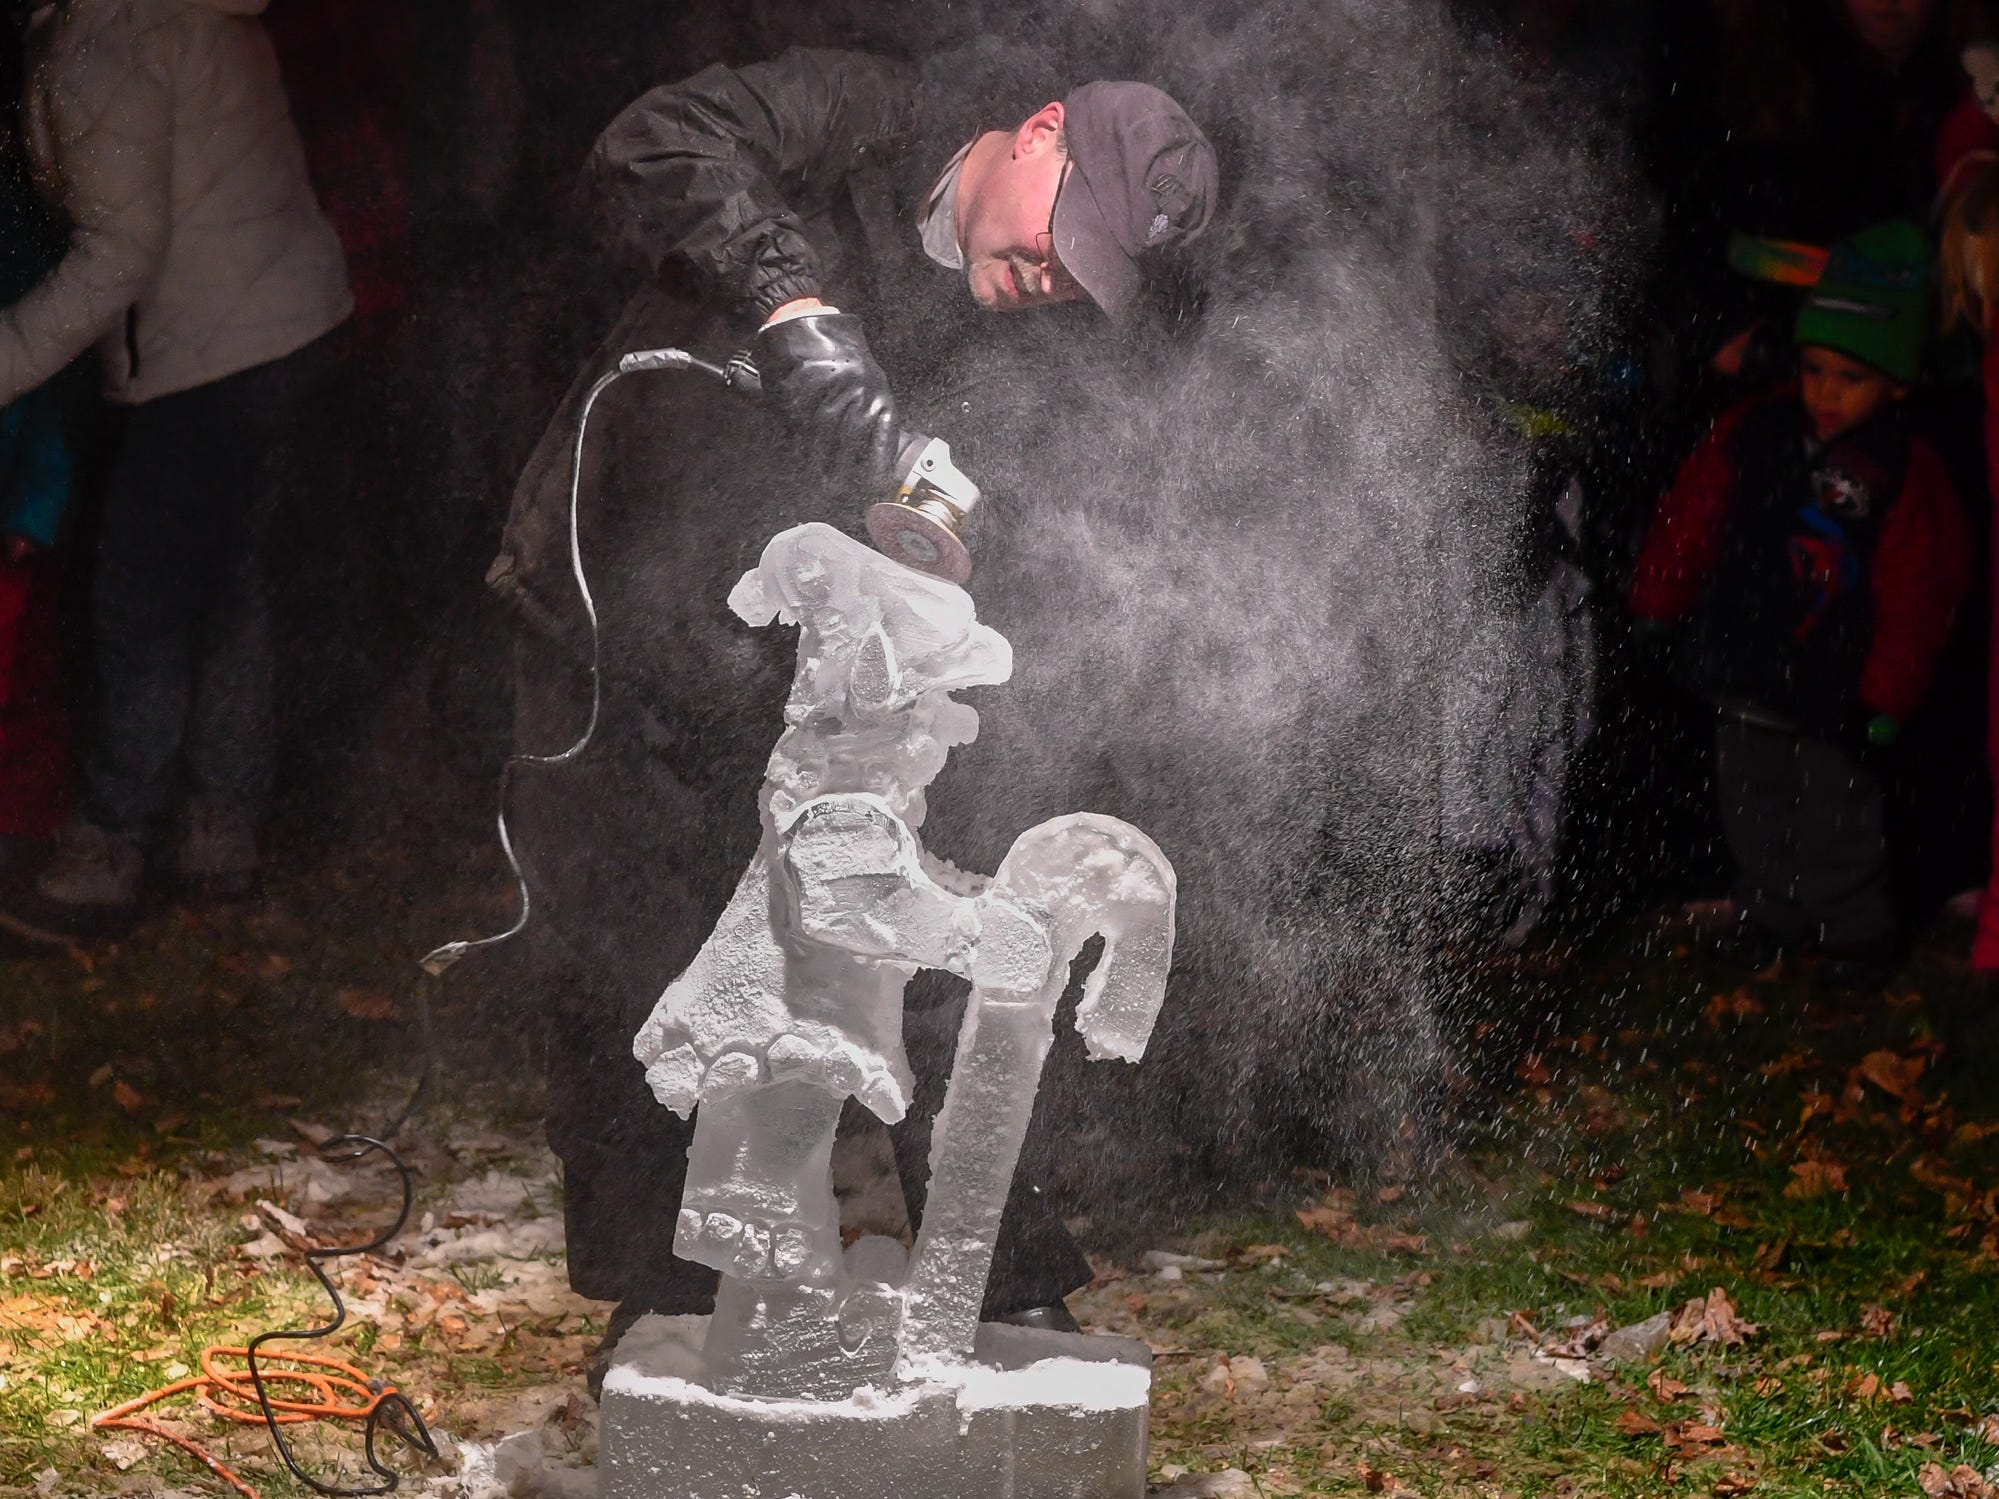 Bruce Keefer of Hanover creates a elf ice sculpture during the 3rd annual Christmas tree lighting in Spring Grove, Thursday, November 29, 2018. 